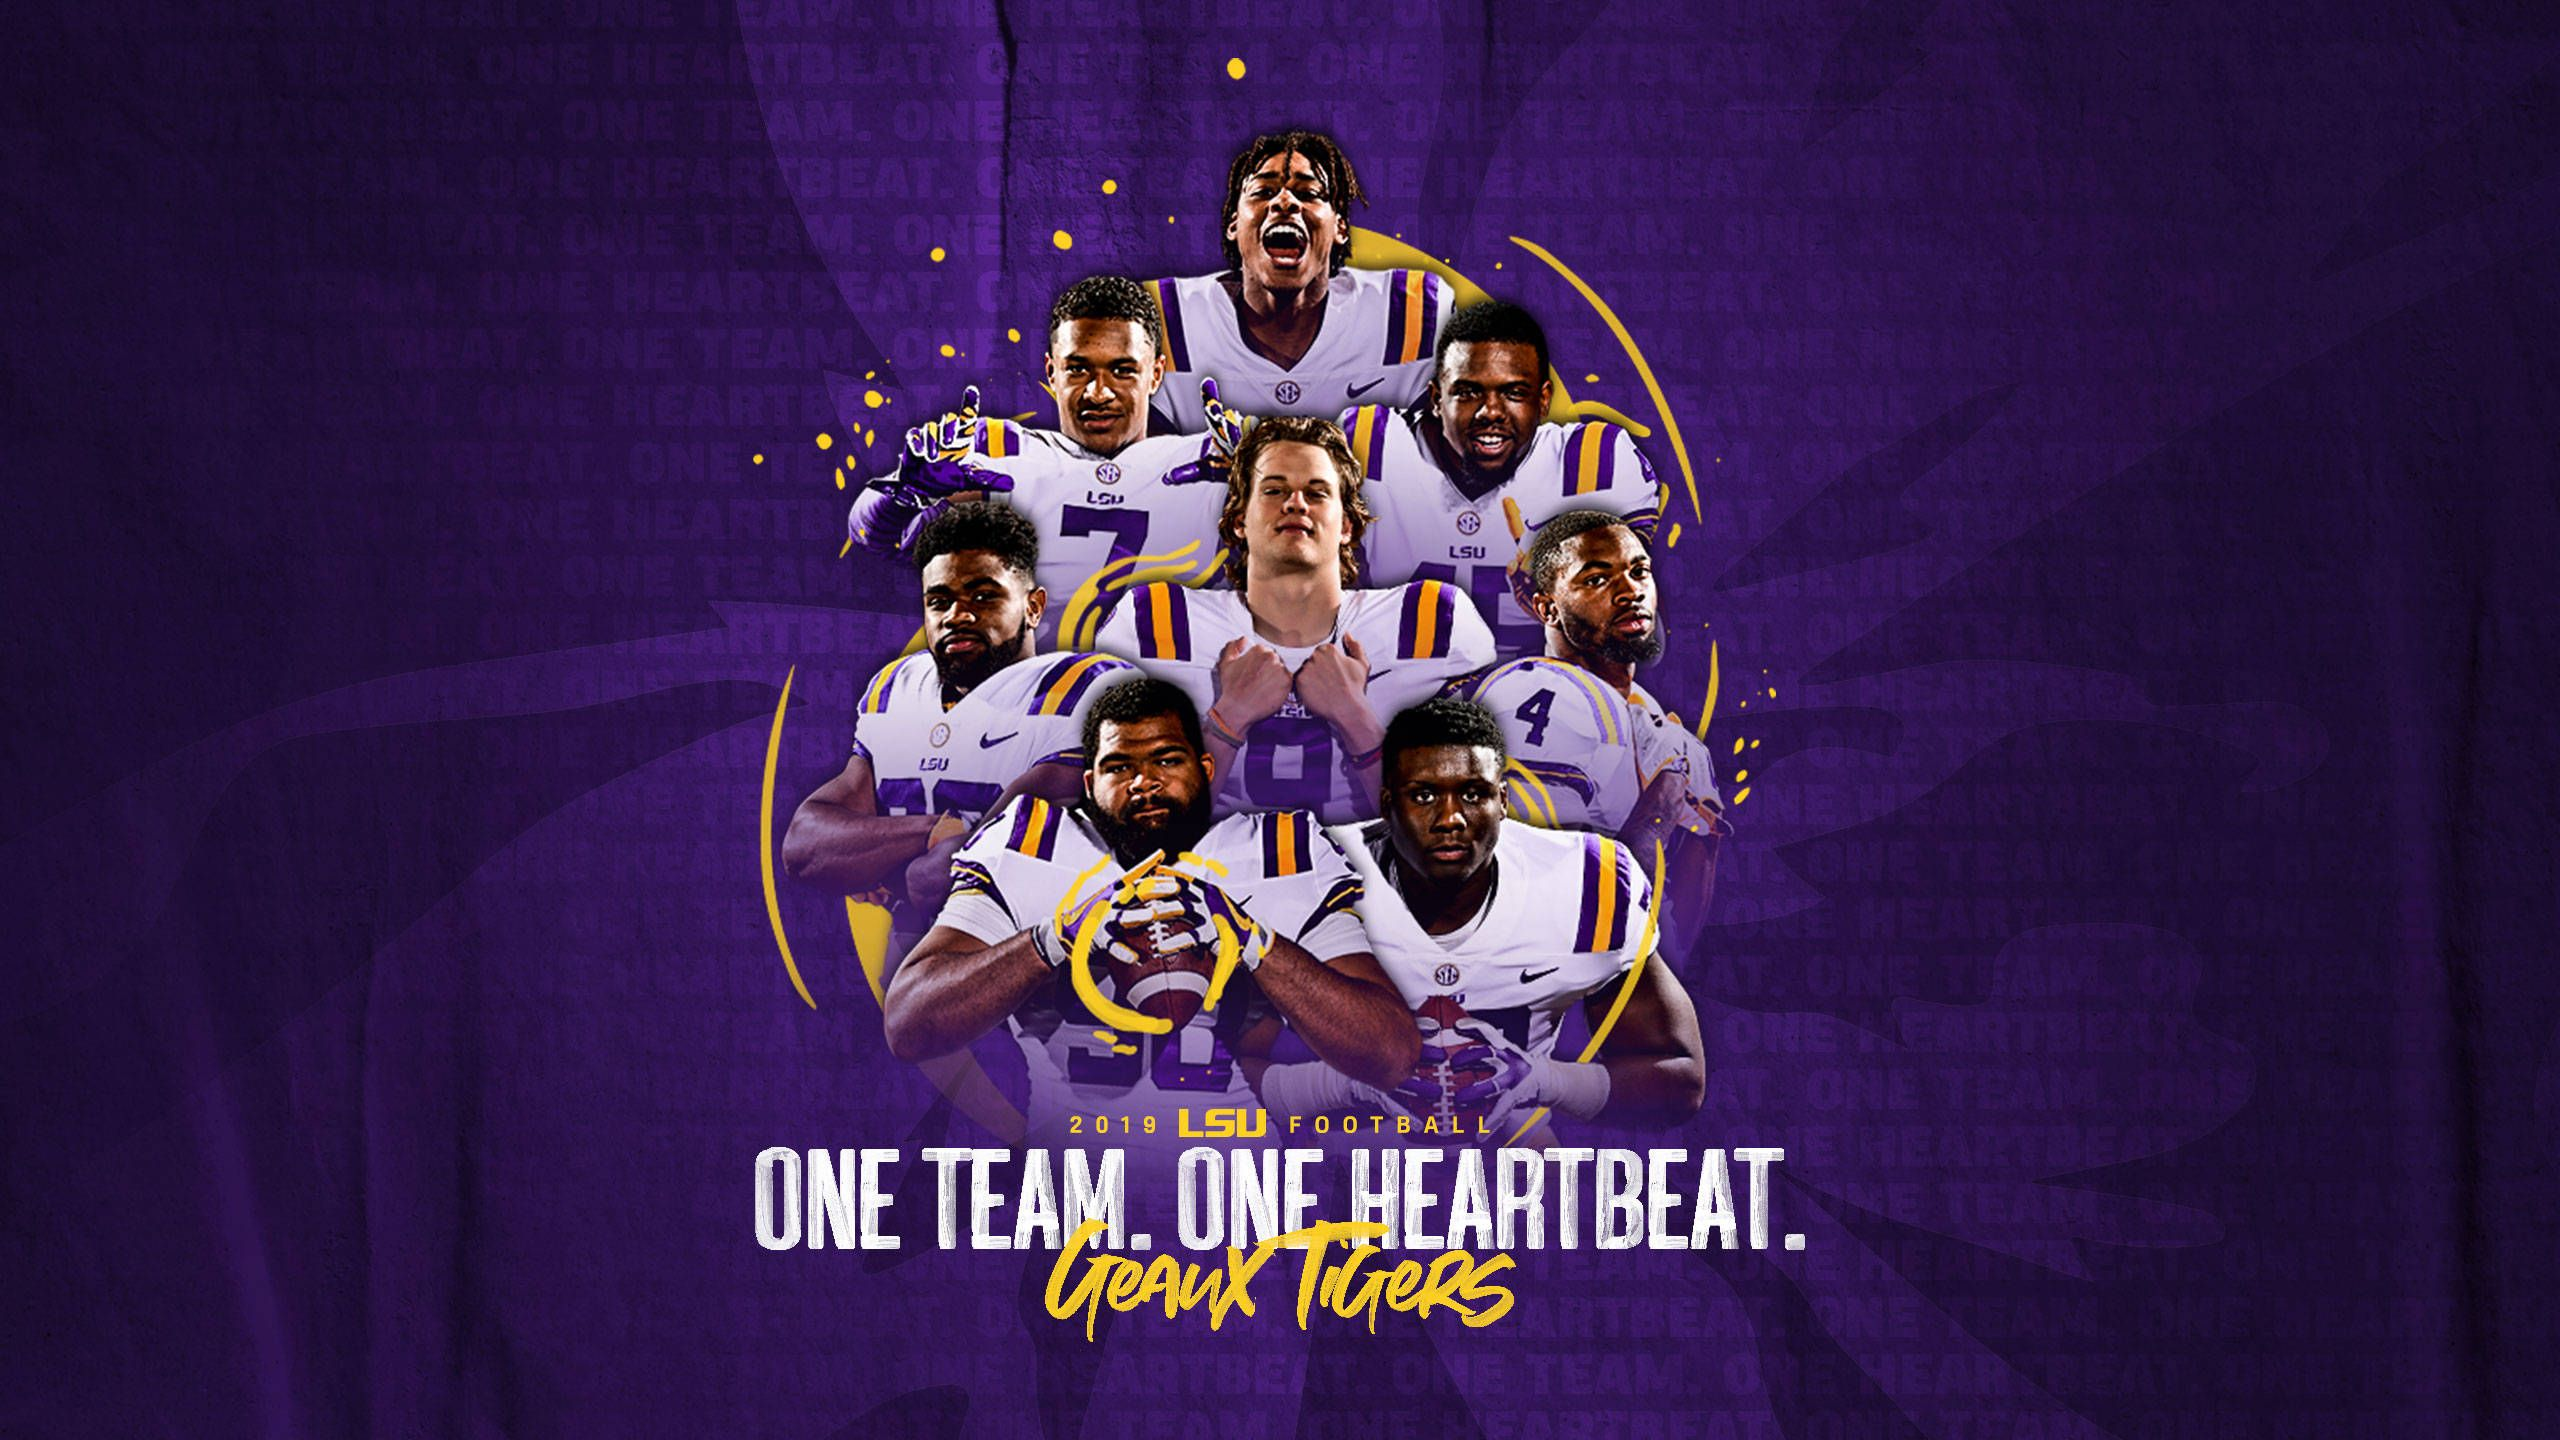 LSU Wallpapers - Top Free LSU